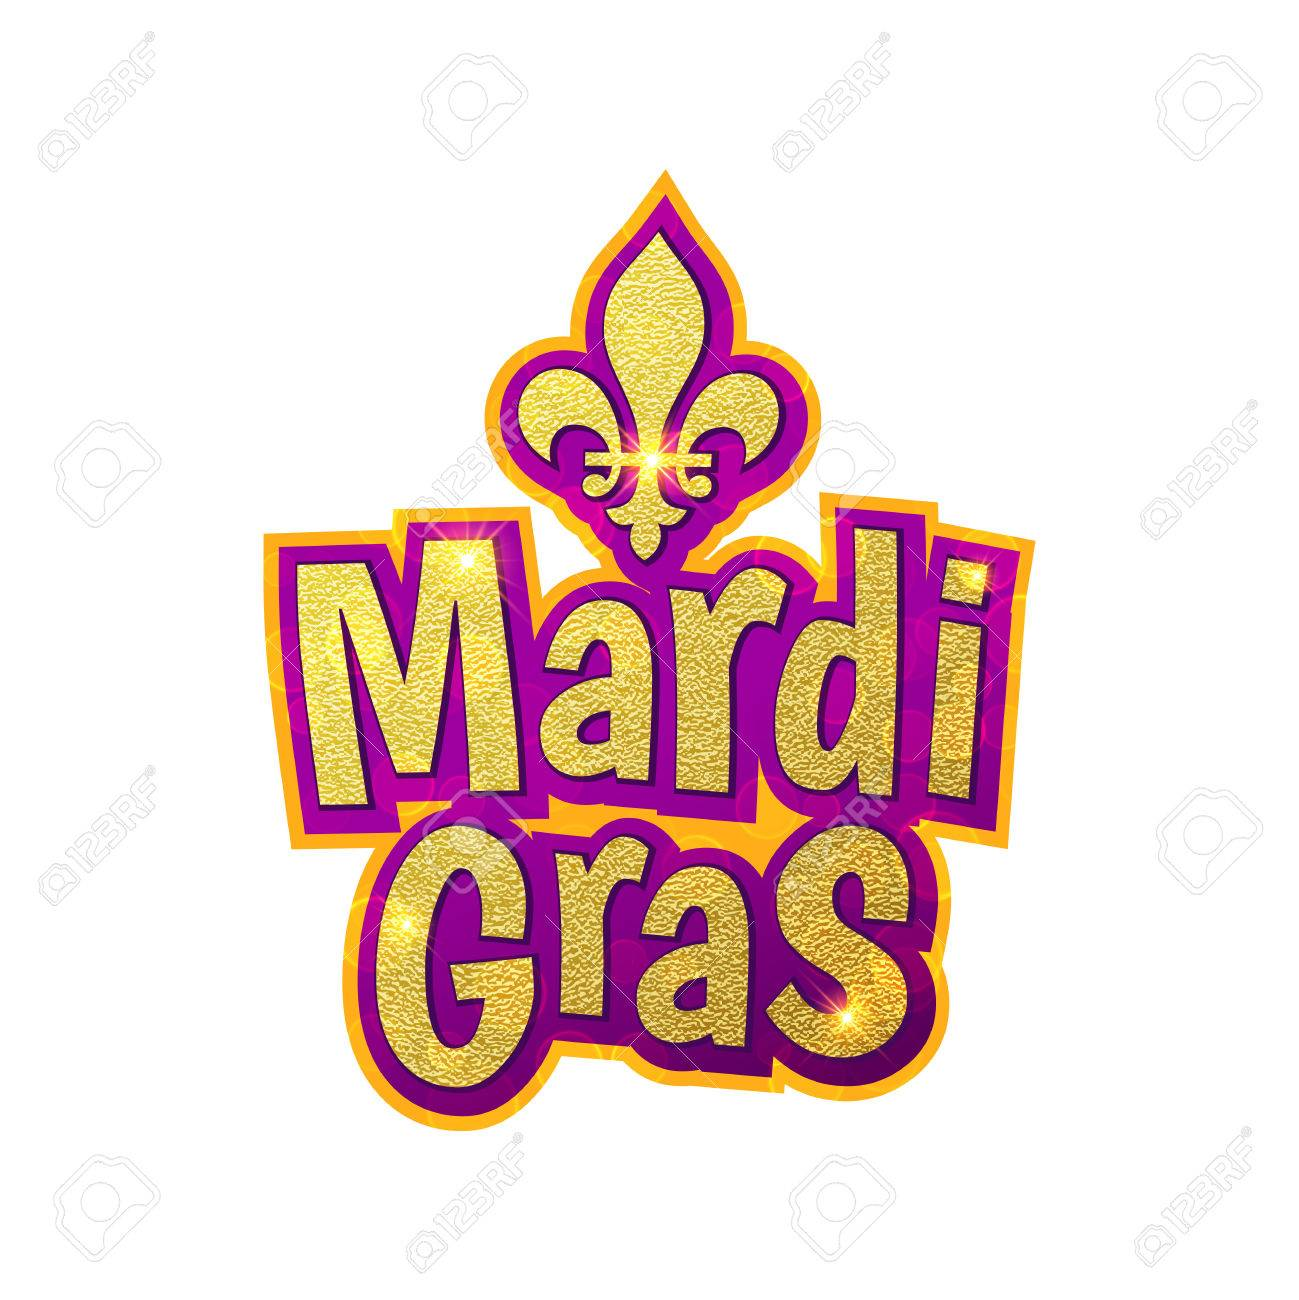 Mardi gras gold glitter text with sparkles fleur de lis lily mardi gras gold glitter text with sparkles fleur de lis lily symbol for buycottarizona Images